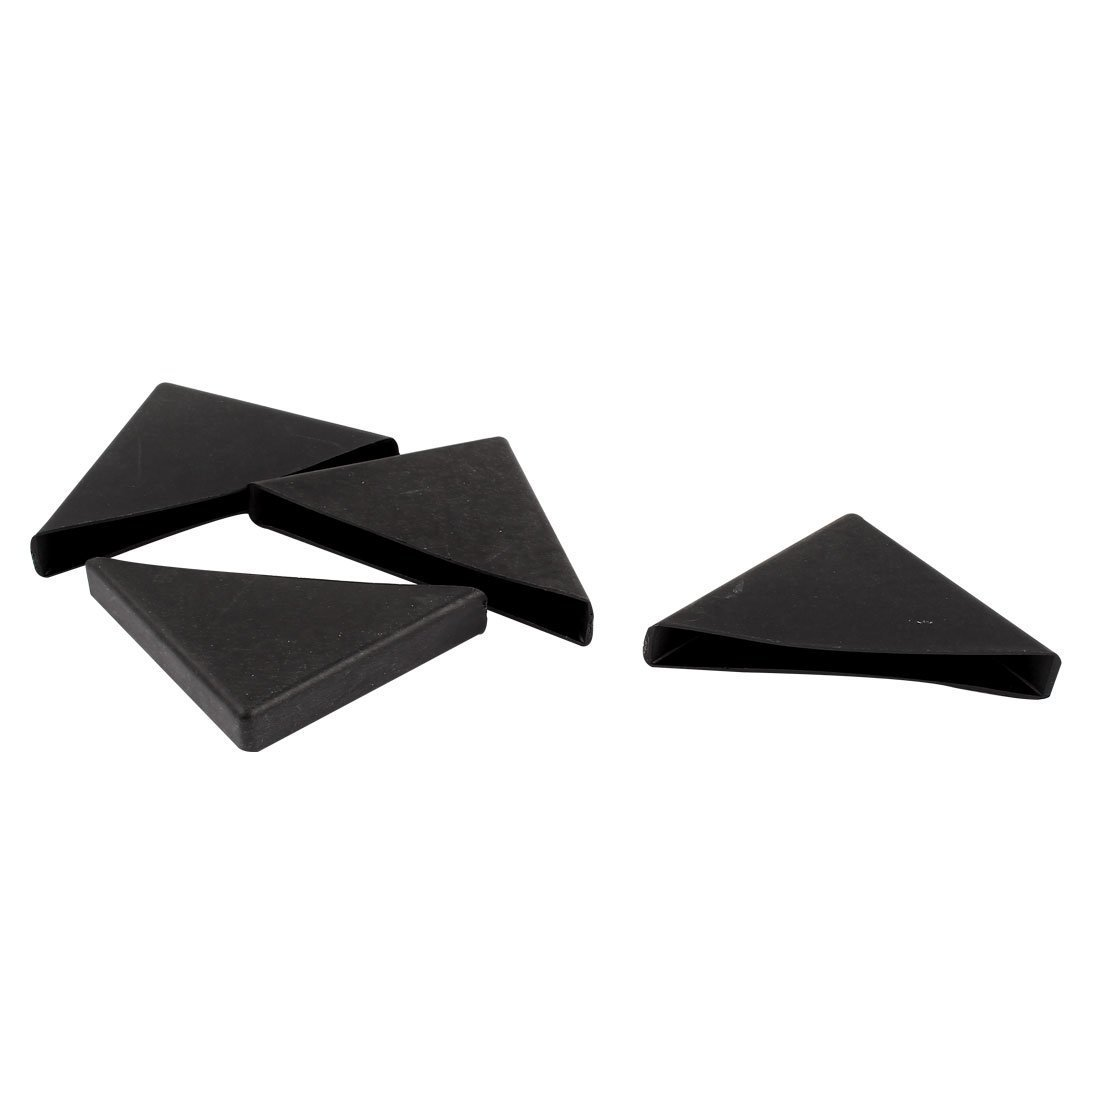 sourcingmap 4 Pcs Triangle Shape Glass Table Couch Corner Protector 10mm x 75mm